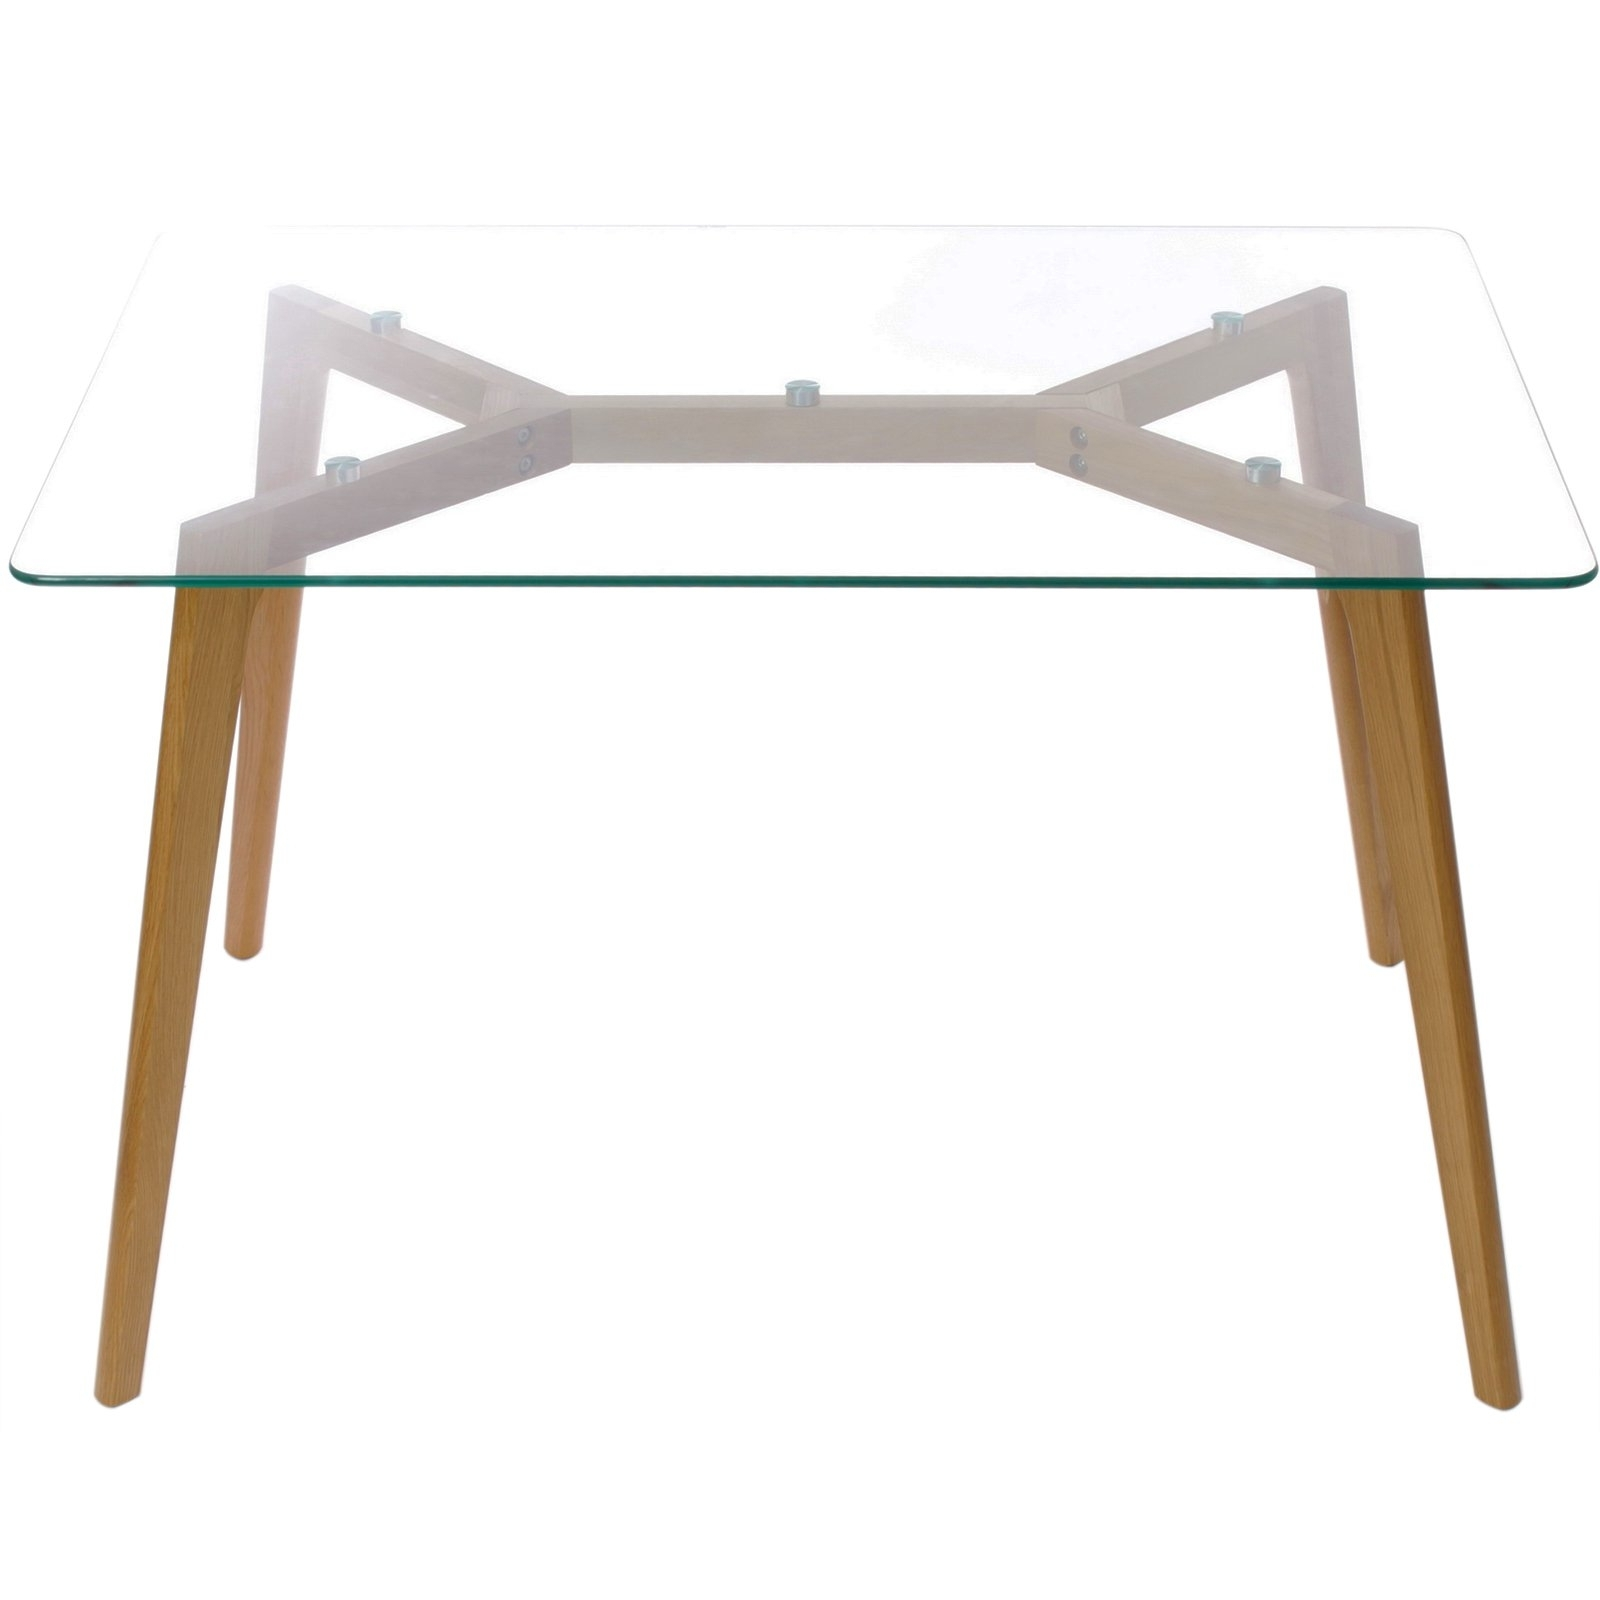 Favorite Charles Jacobs Glass Dining Table With Solid Wood Oak Legs – Choice Intended For Glass Dining Tables With Oak Legs (View 7 of 25)